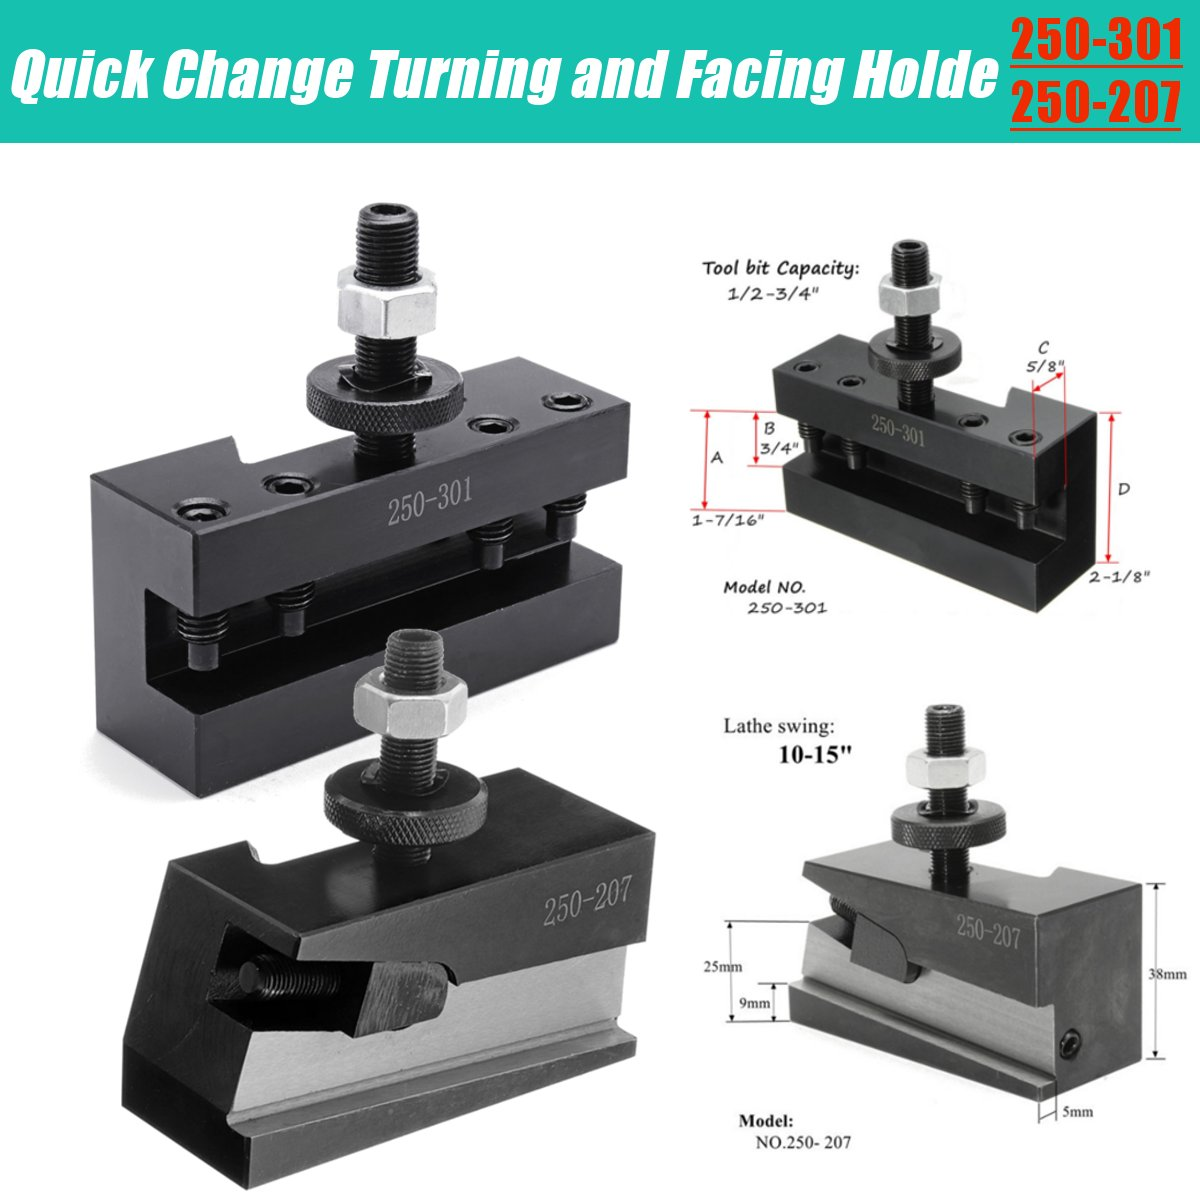 Steel 10-15 Quick Change CNC Lathe Tool Post Turning Facing Holder NO.250-201